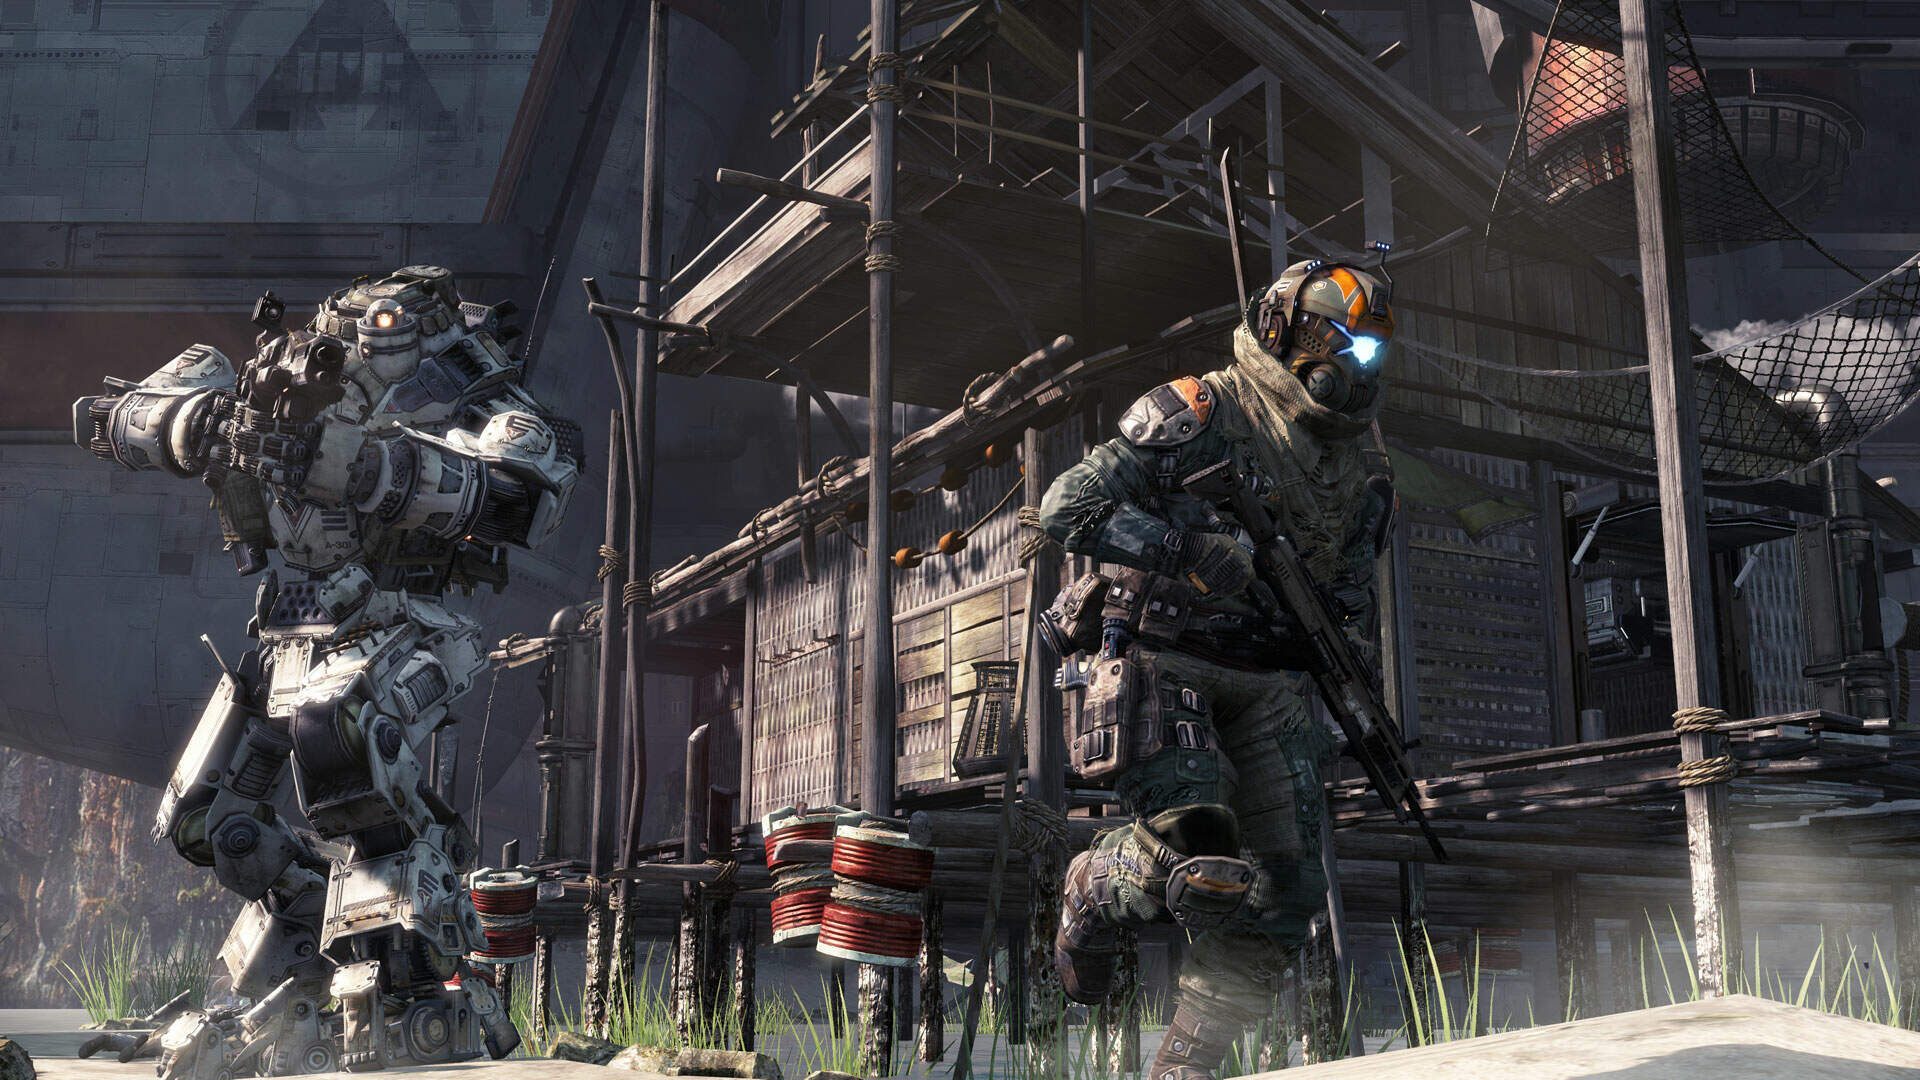 Titanfall Preview: Call of Duty with Mechs it Most Certainly Ain't